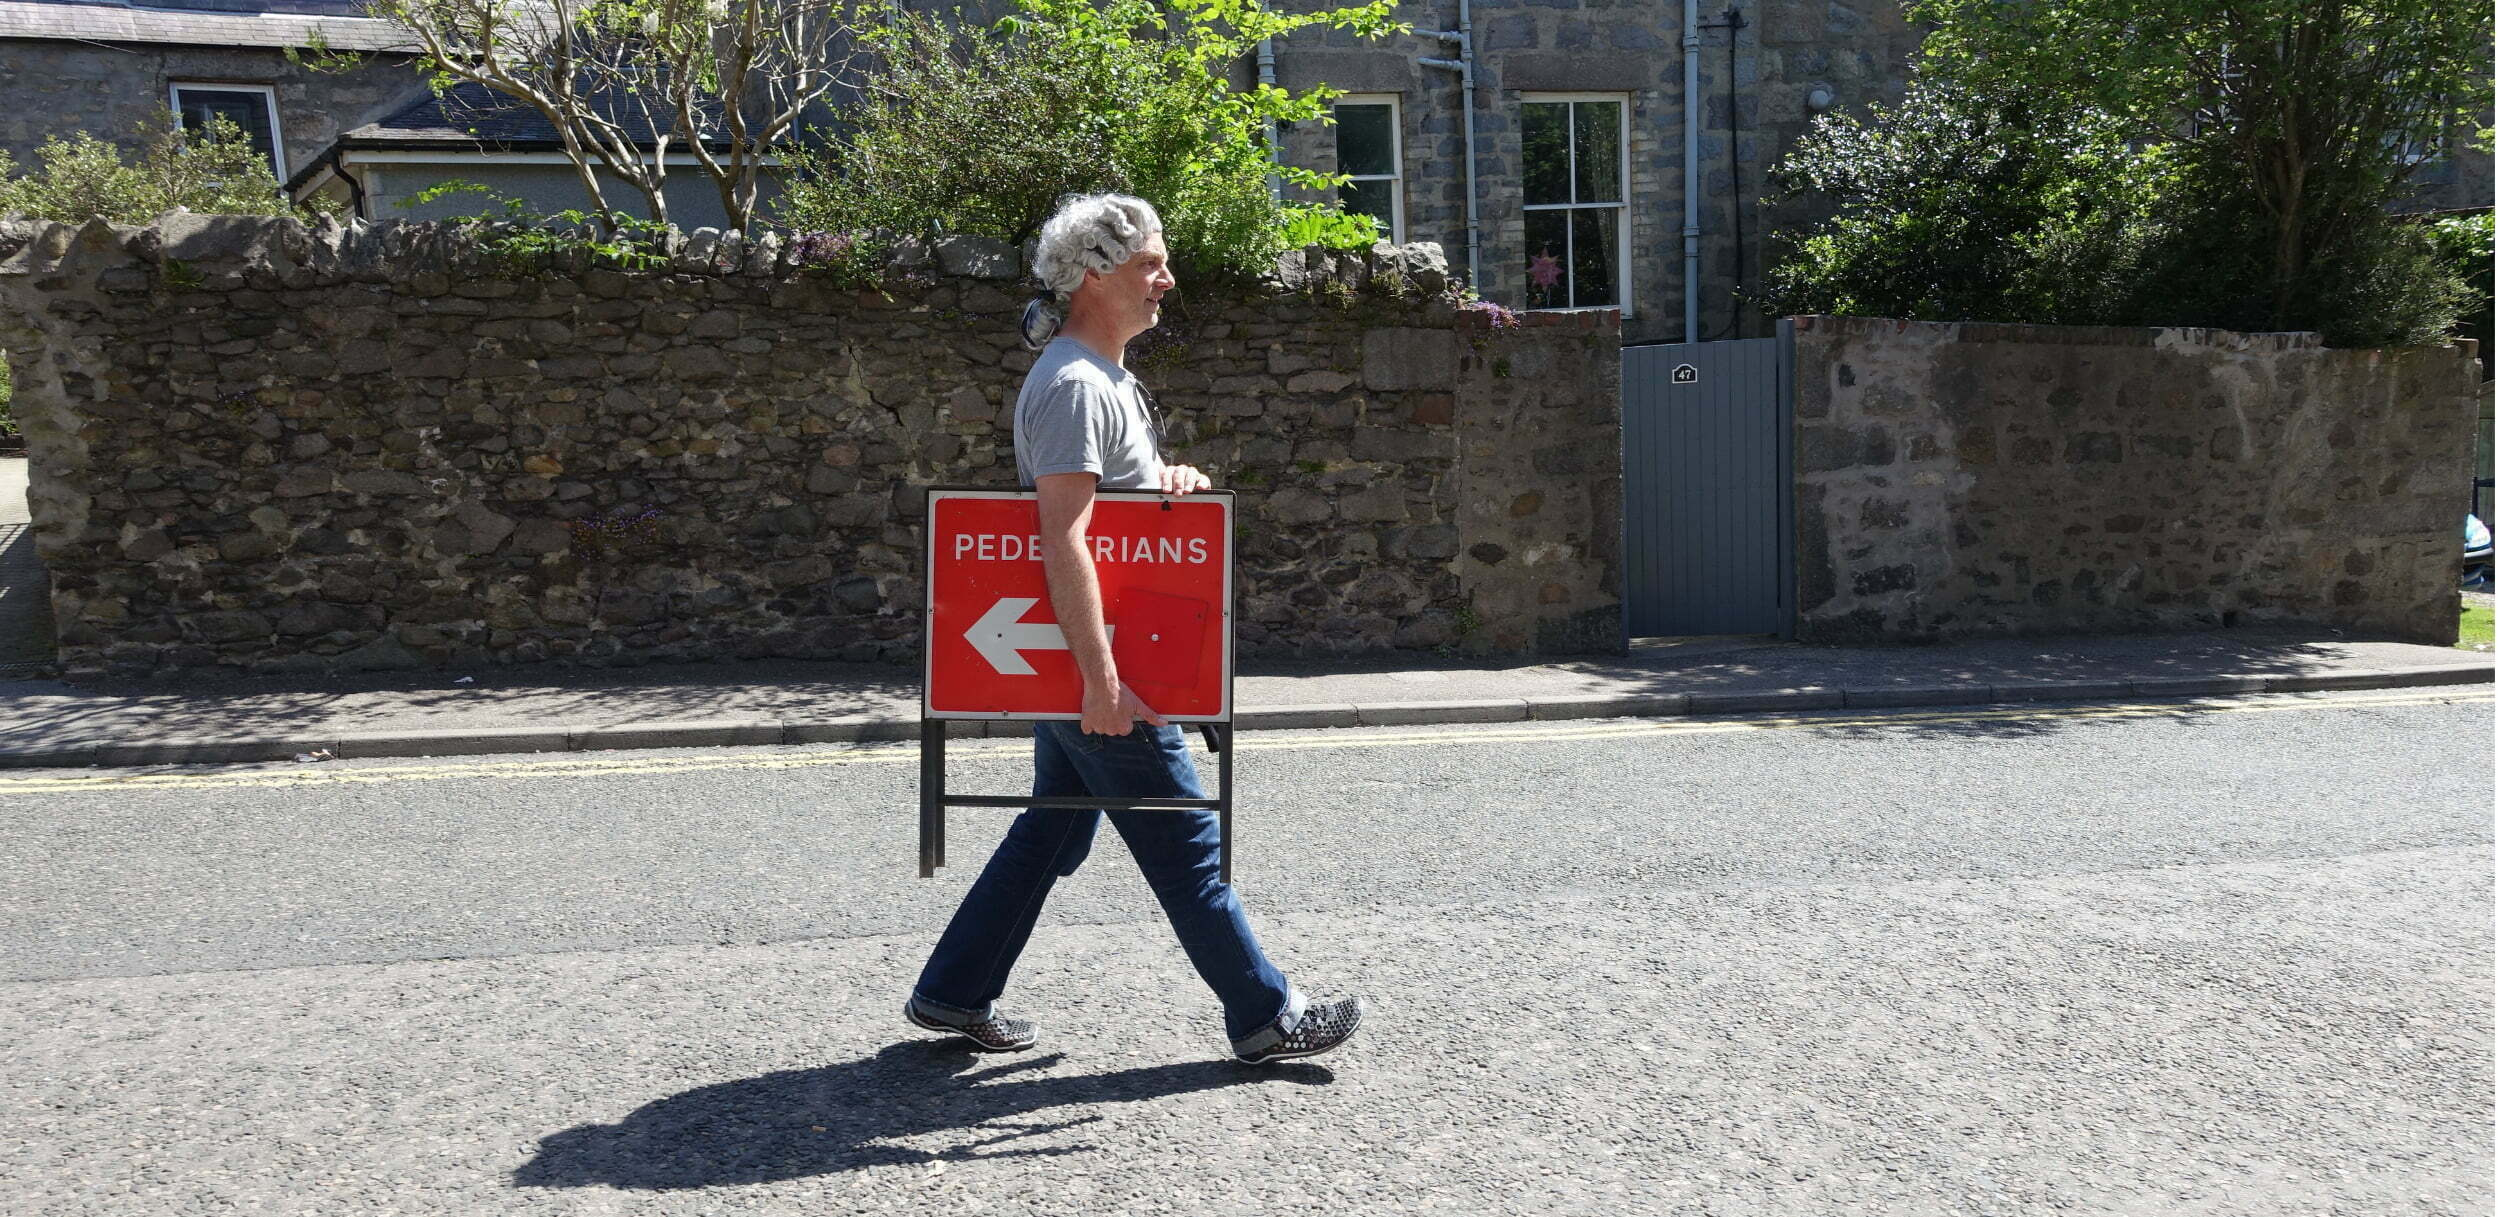 Karl Jay-Lewin walks along a public road in a residential area, from left to right. He is wearing a grey barrister's wig, a grey t-shirt and navy jeans, and he is holding a red and white roadsign with the word PEDESTRIANS and a white arrow pointing in the opposite direction to the direction he is walking. Behind him is a pavement and a grey stone wall, with a grey gate to a house and garden behind. There are tree brances and green leaves visible above the wall.